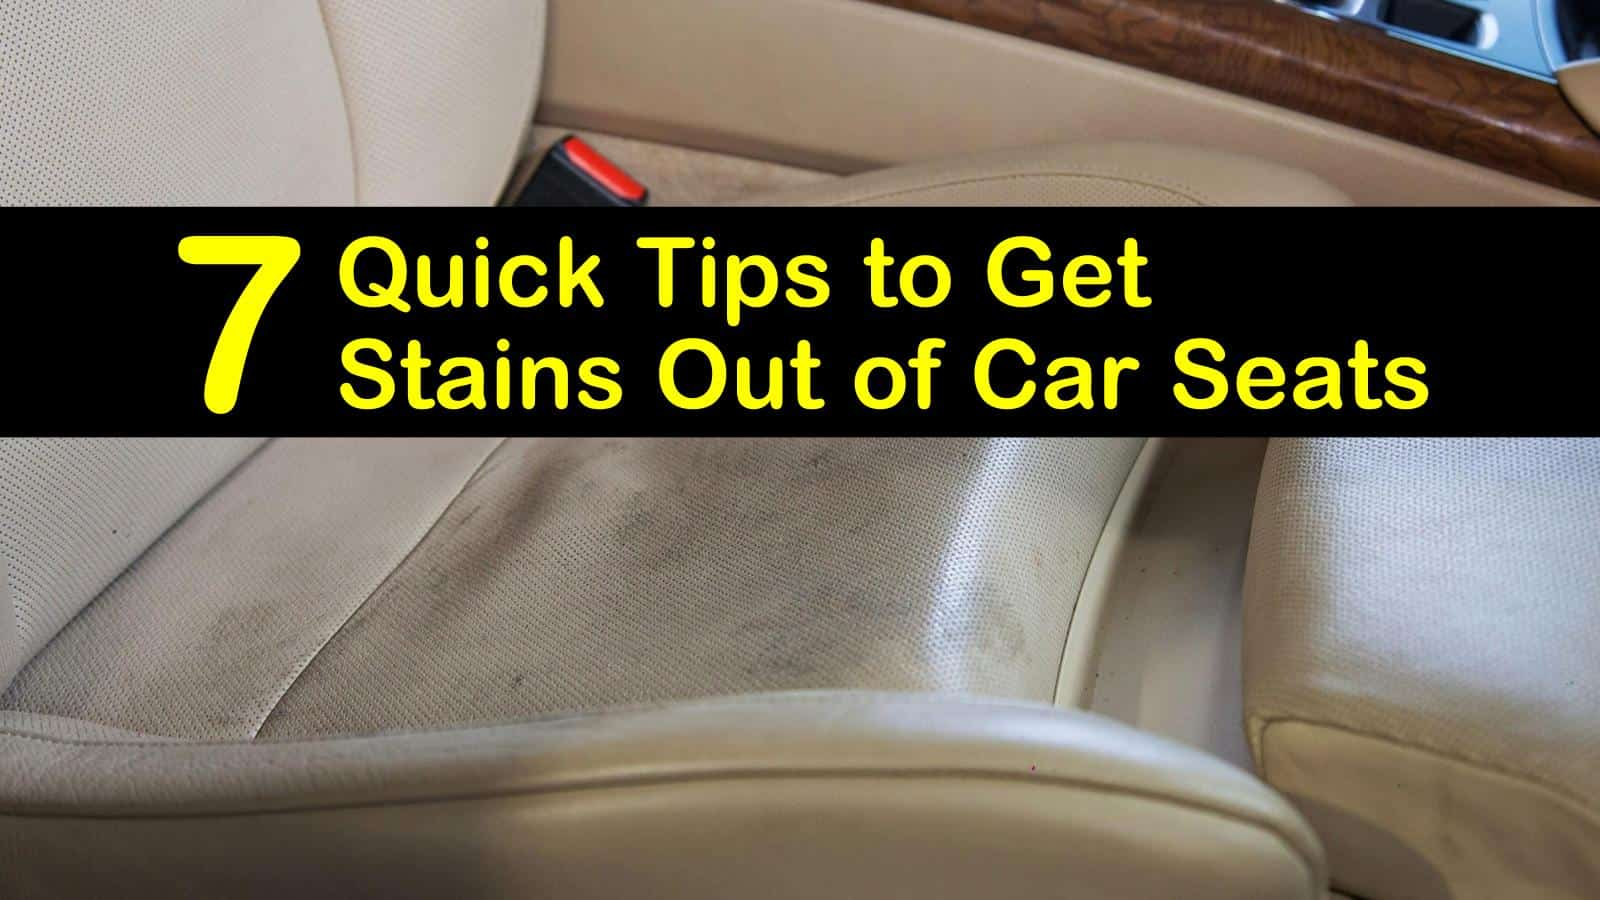 how to get stains out of car seats titleimg1